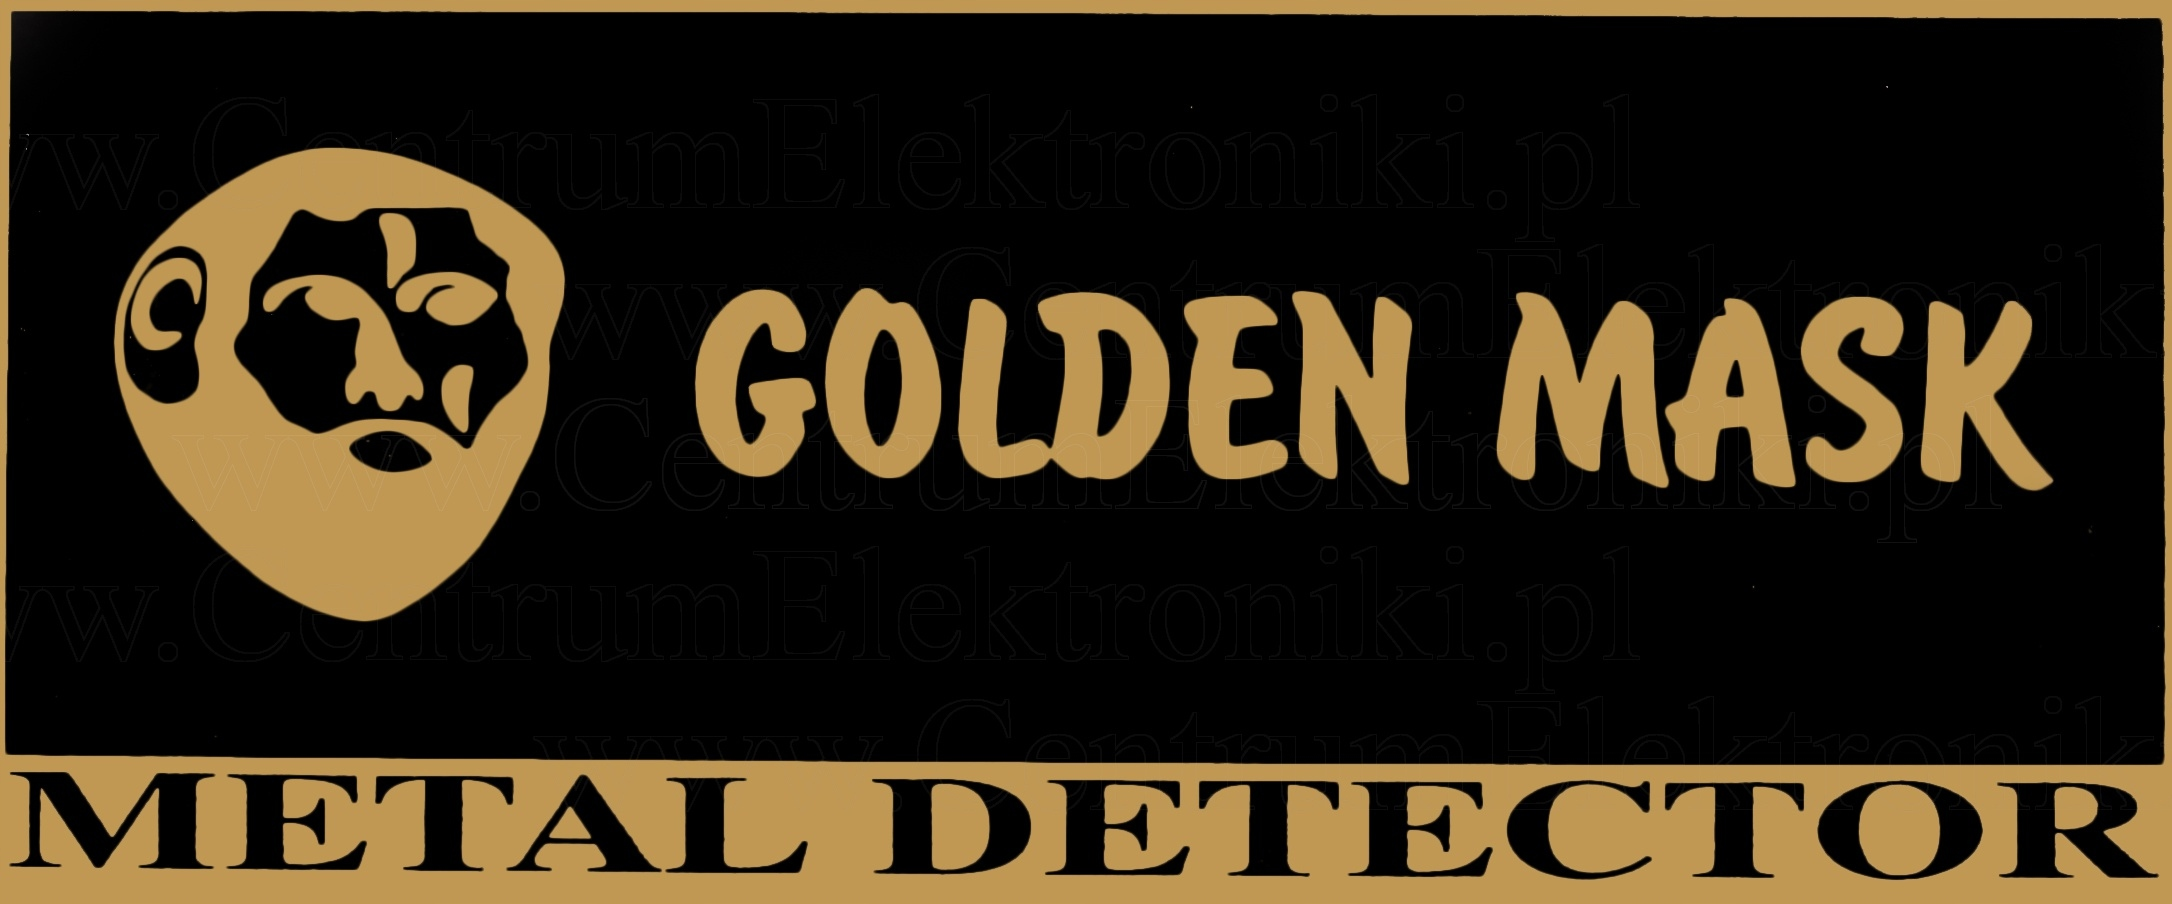 golden mask detector de metal logo